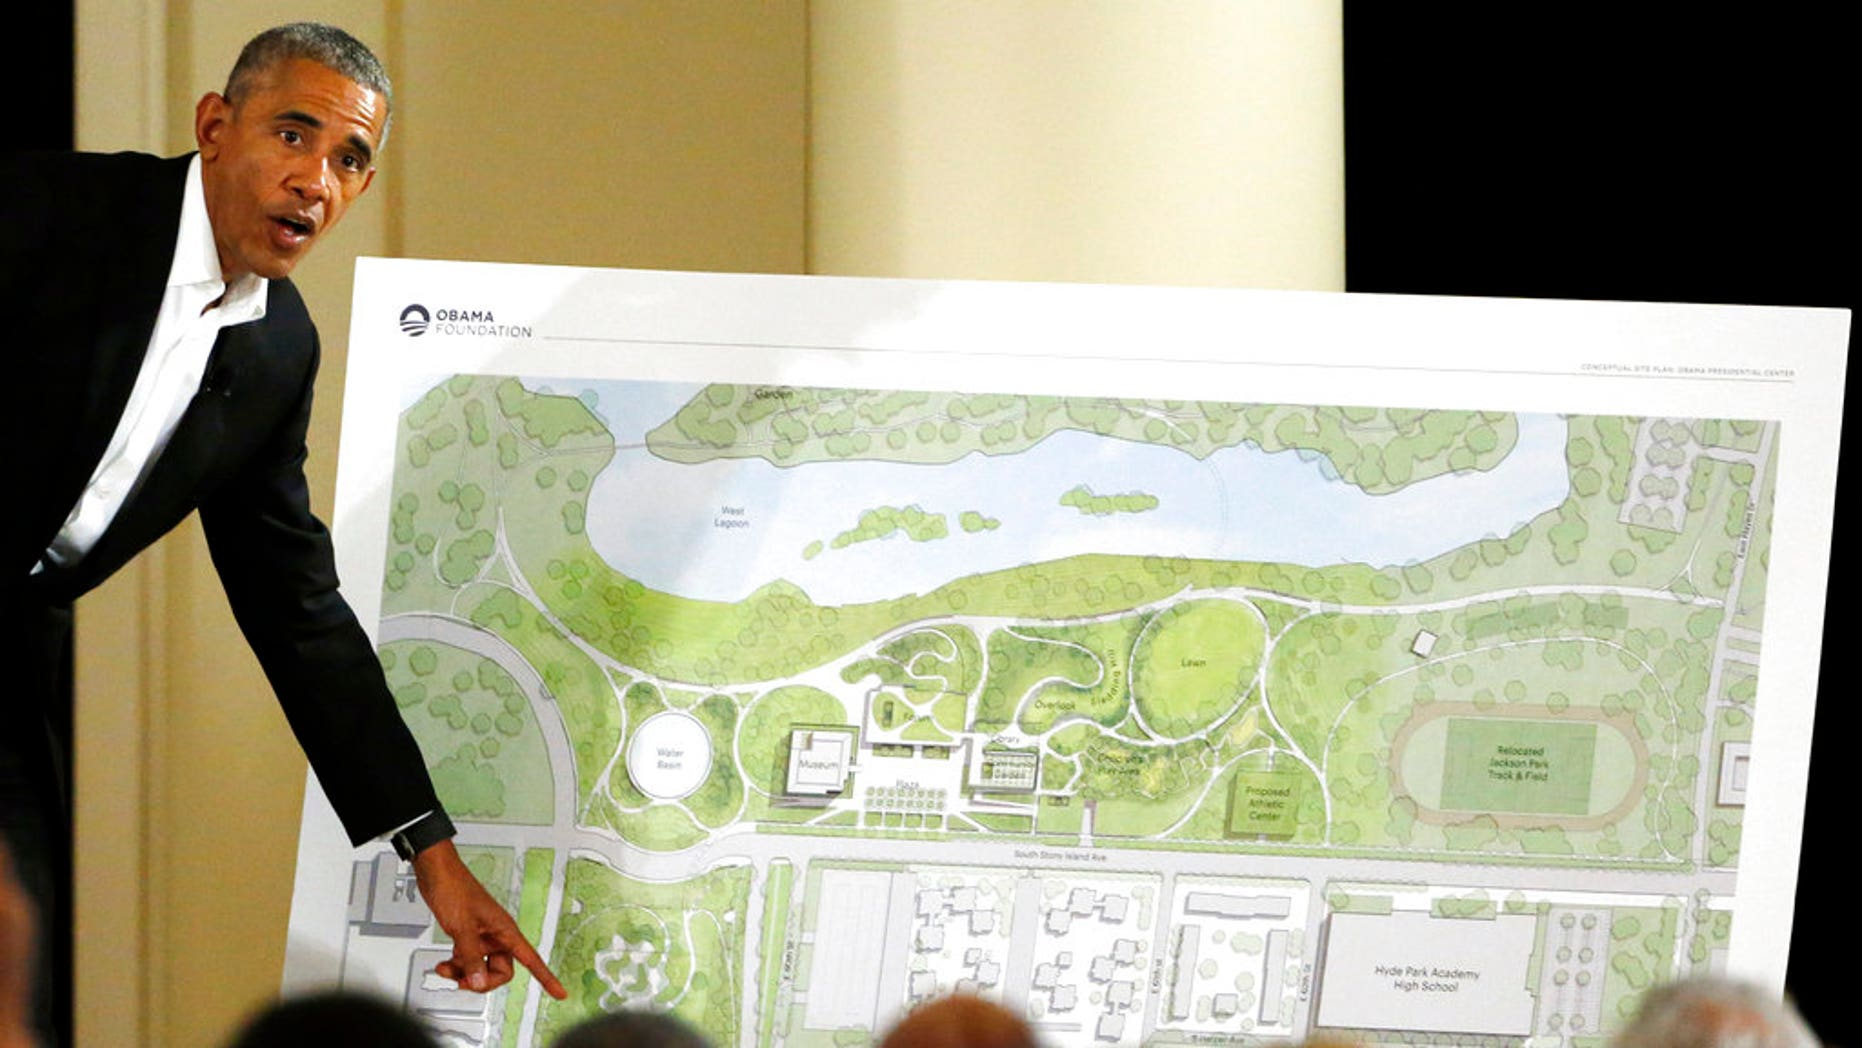 Former President Barack Obama describes the plans for the Obama Presidential Center during an appearance in Chicago.